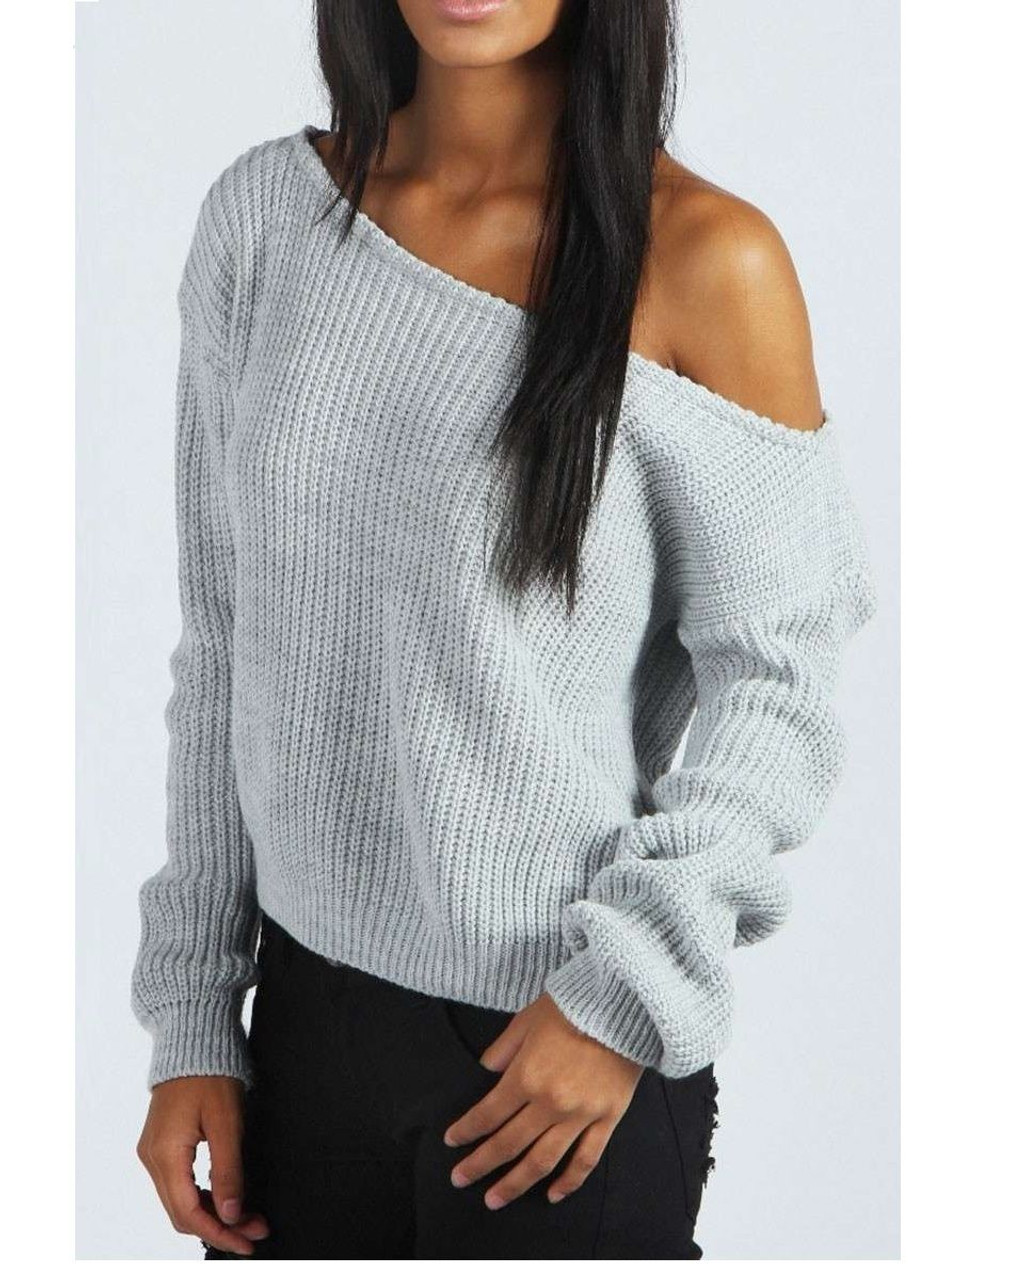 Kylie Grey Off Shoulder Knitted Jumper - JADOREYOU.COM 89b819994